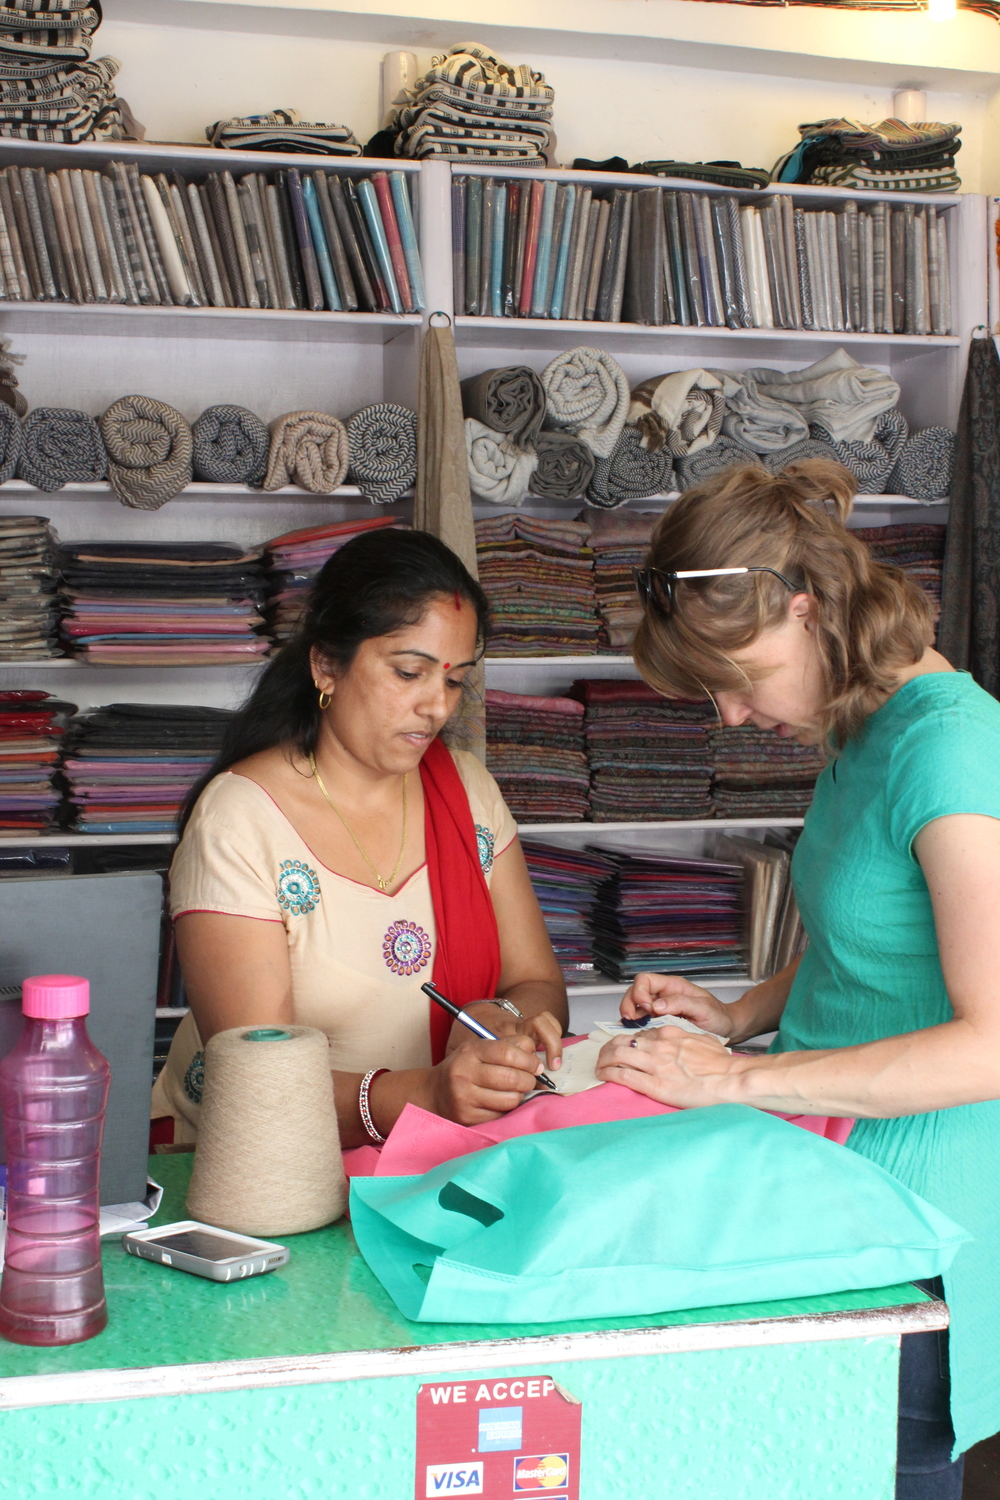 Founder Amanda collaborating on new designs with our partners in Nepal